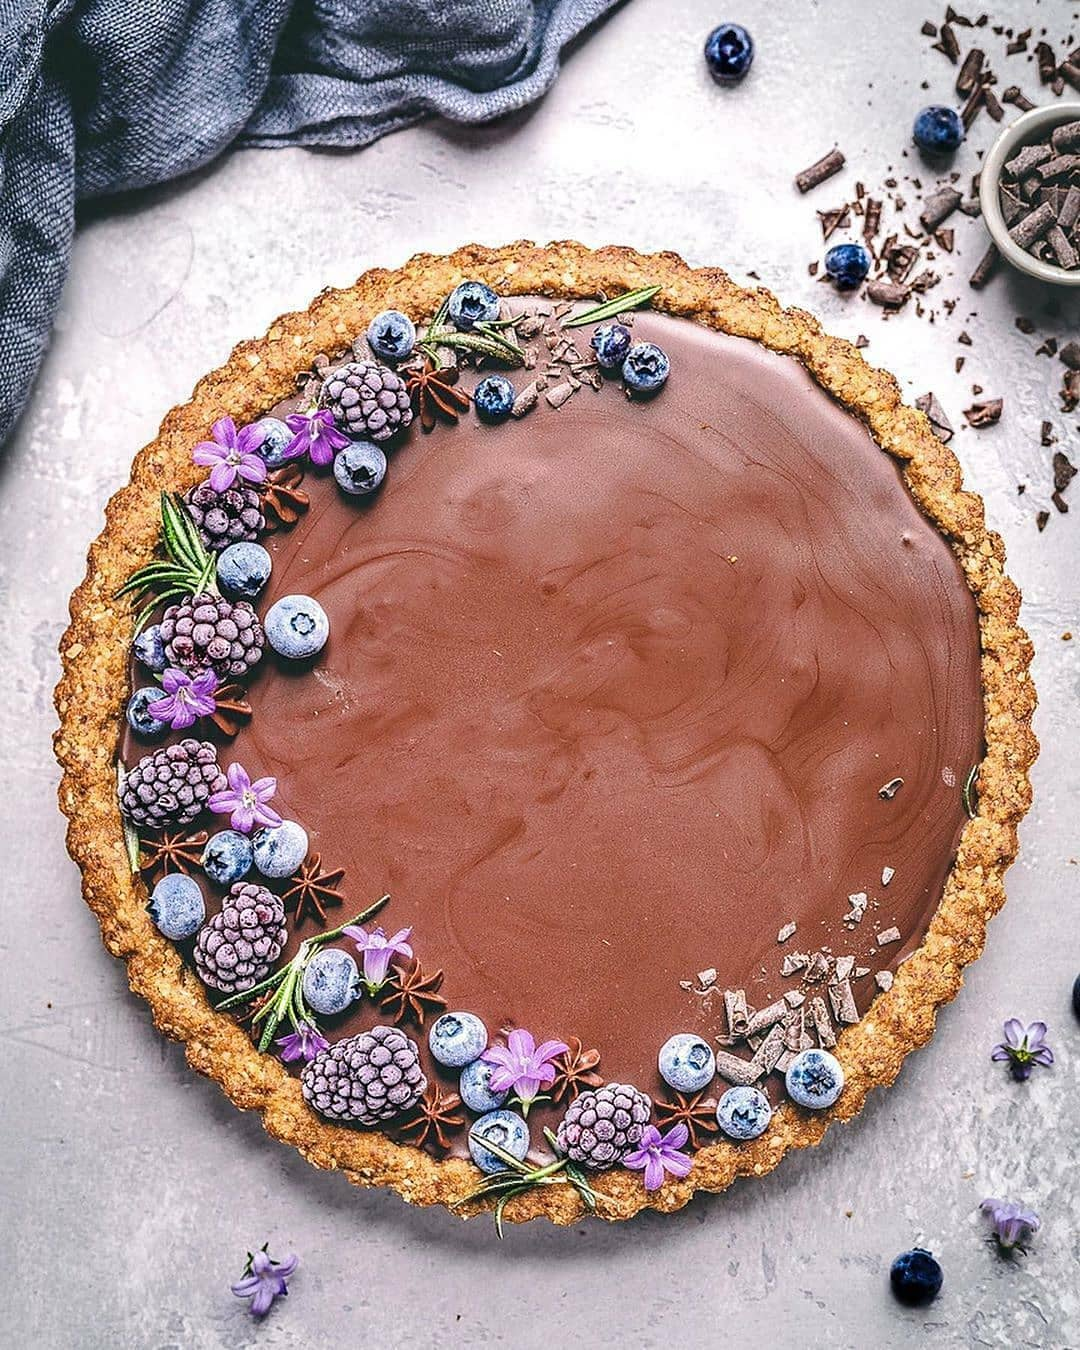 gluten free blueberry and chocolate tart by sculptedkitchen display image  553c29a7